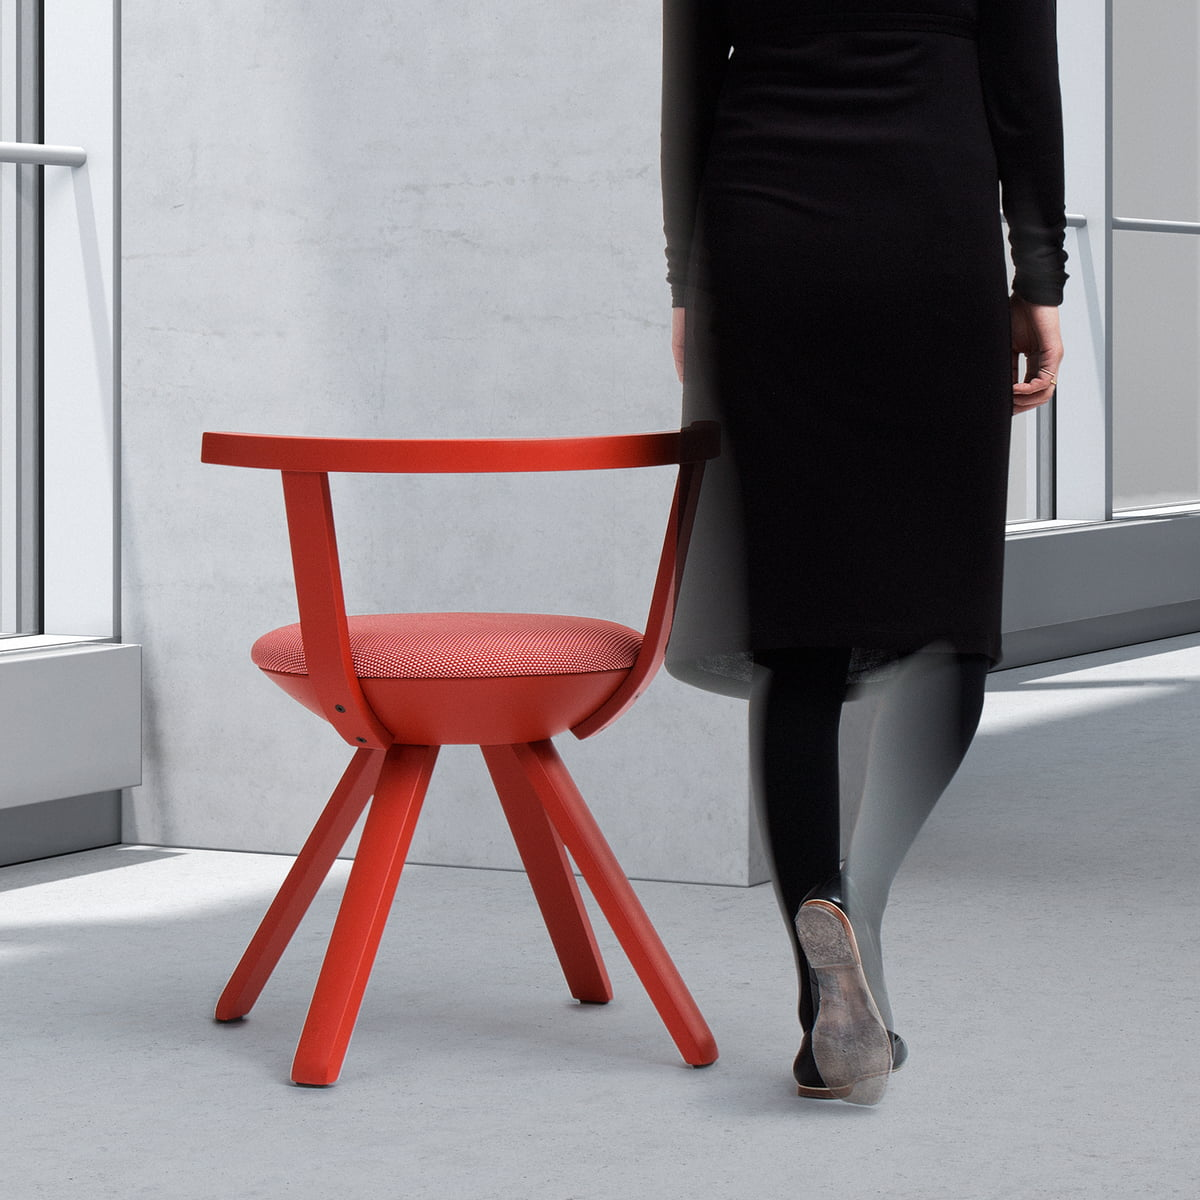 Artek - KG001 Rival Chair red & The Rival Chair by Artek in our interior design shop